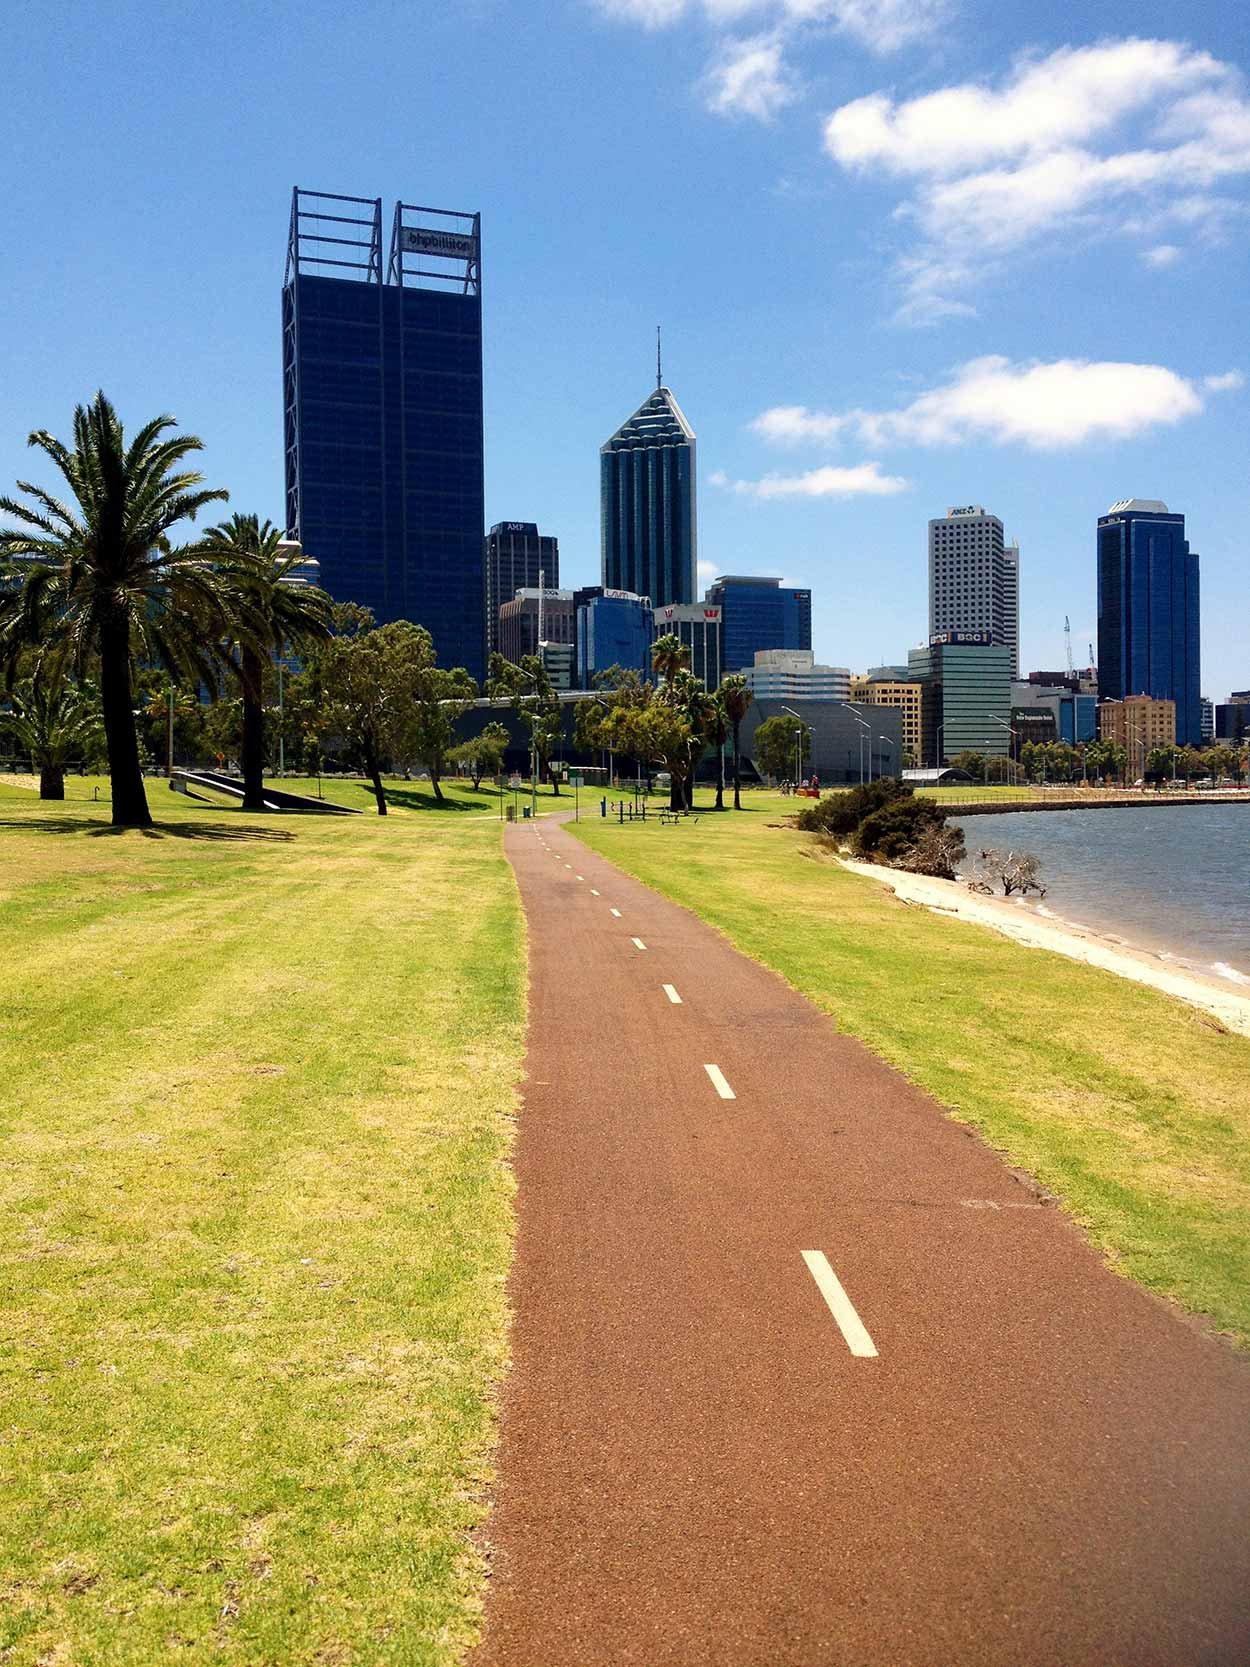 The Perth CBD from the path between the Swan River and Riverside Drive, Perth, Western Australia